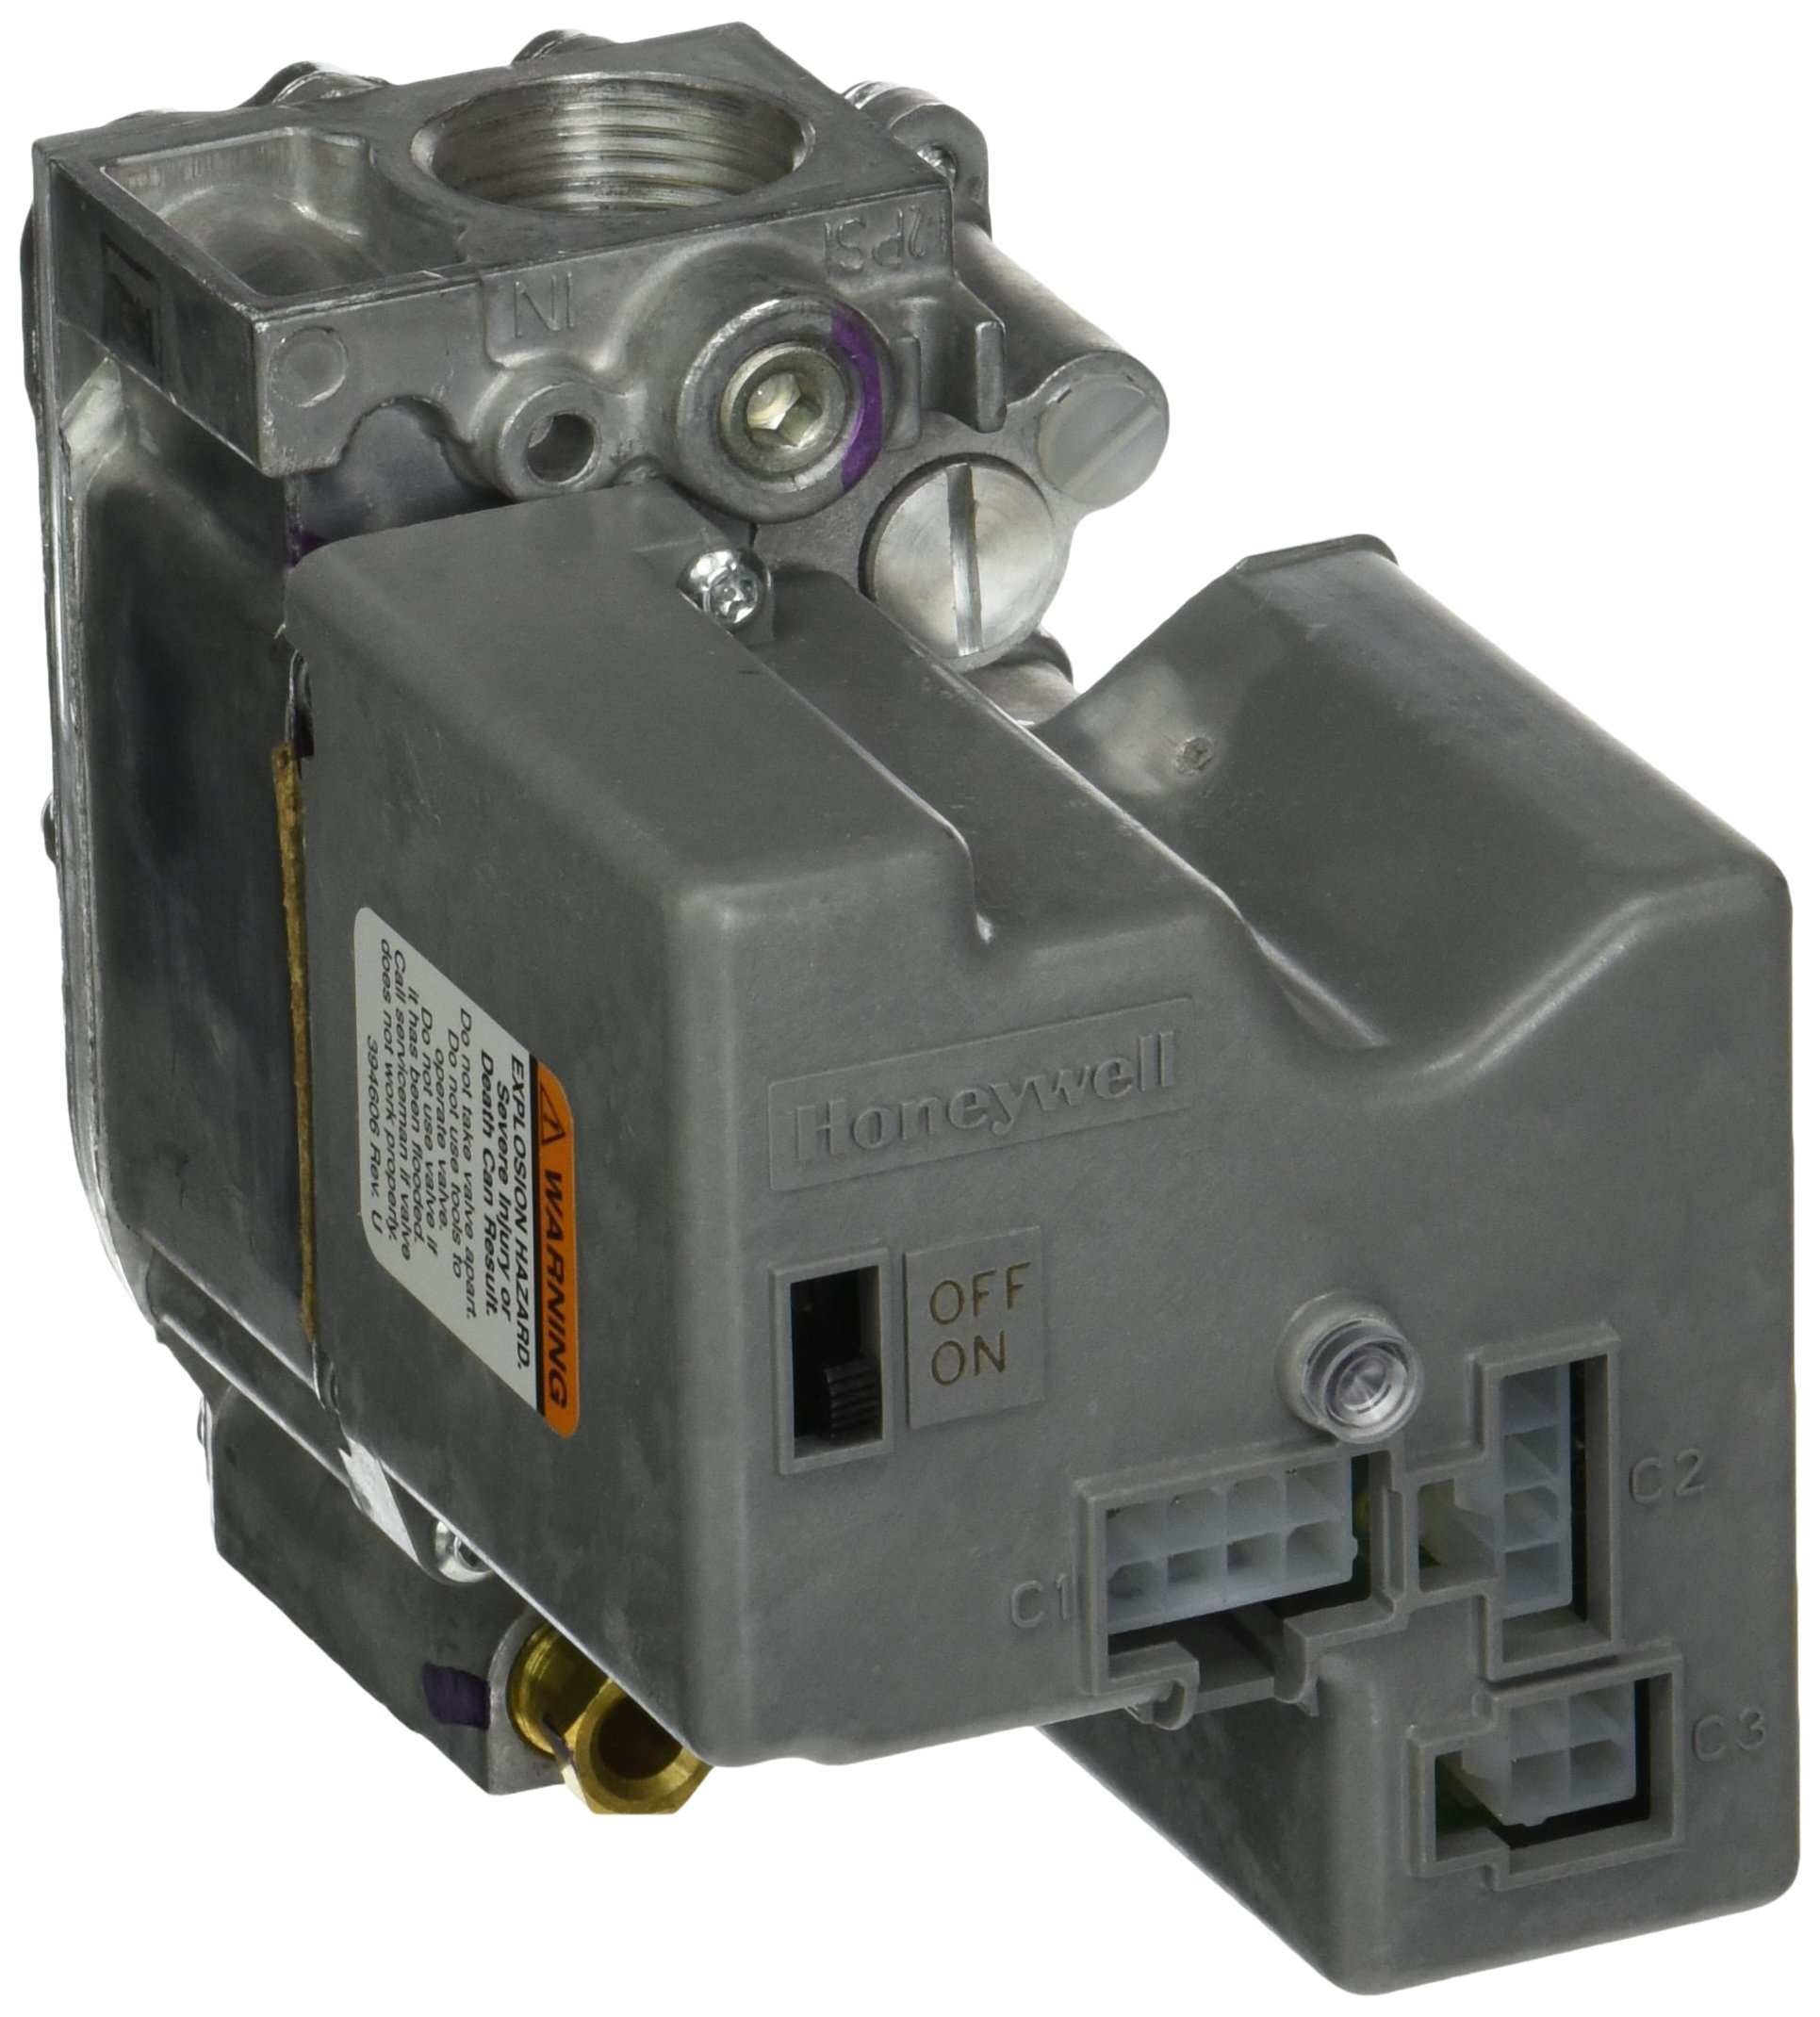 Honeywell SV9641M-4510 Intermittent Pilot with Comb Air Control, SmartValve and Standard Opening, 3/4'' x 3/4''